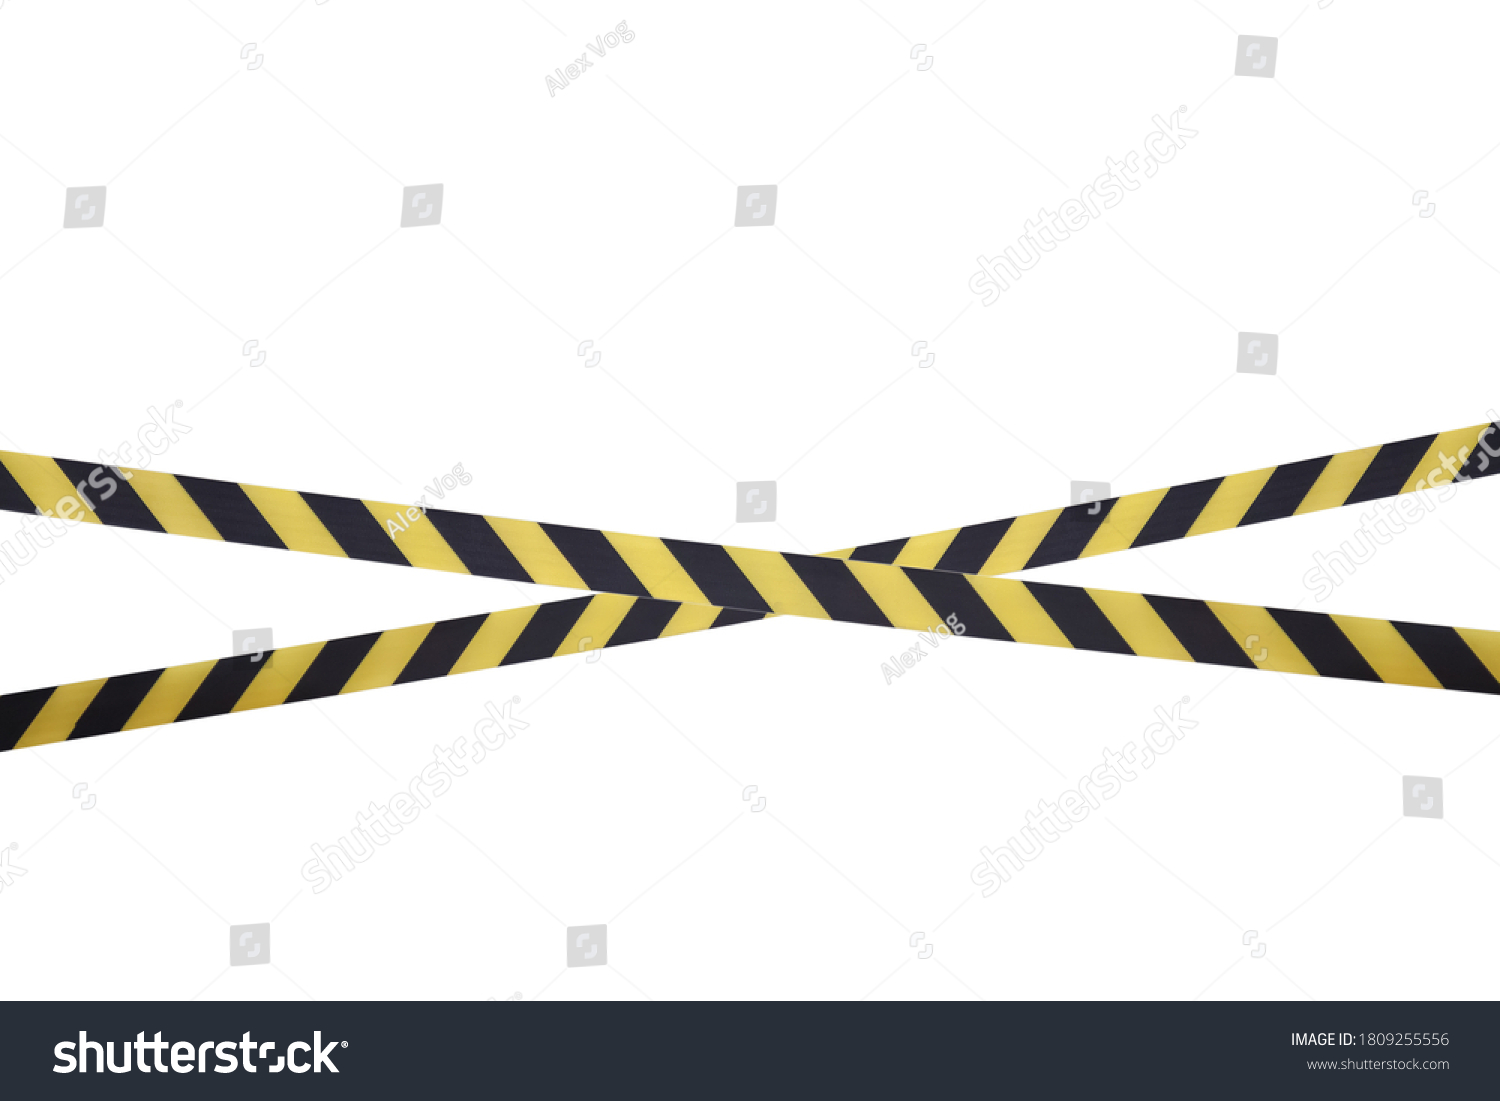 Black and yellow lines of barrier tape prohibit passage. Barrier tape on white isolate. Barrier that prohibits traffic. Warning tape. Danger unsafe area warning do not enter. Concept of no entry #1809255556